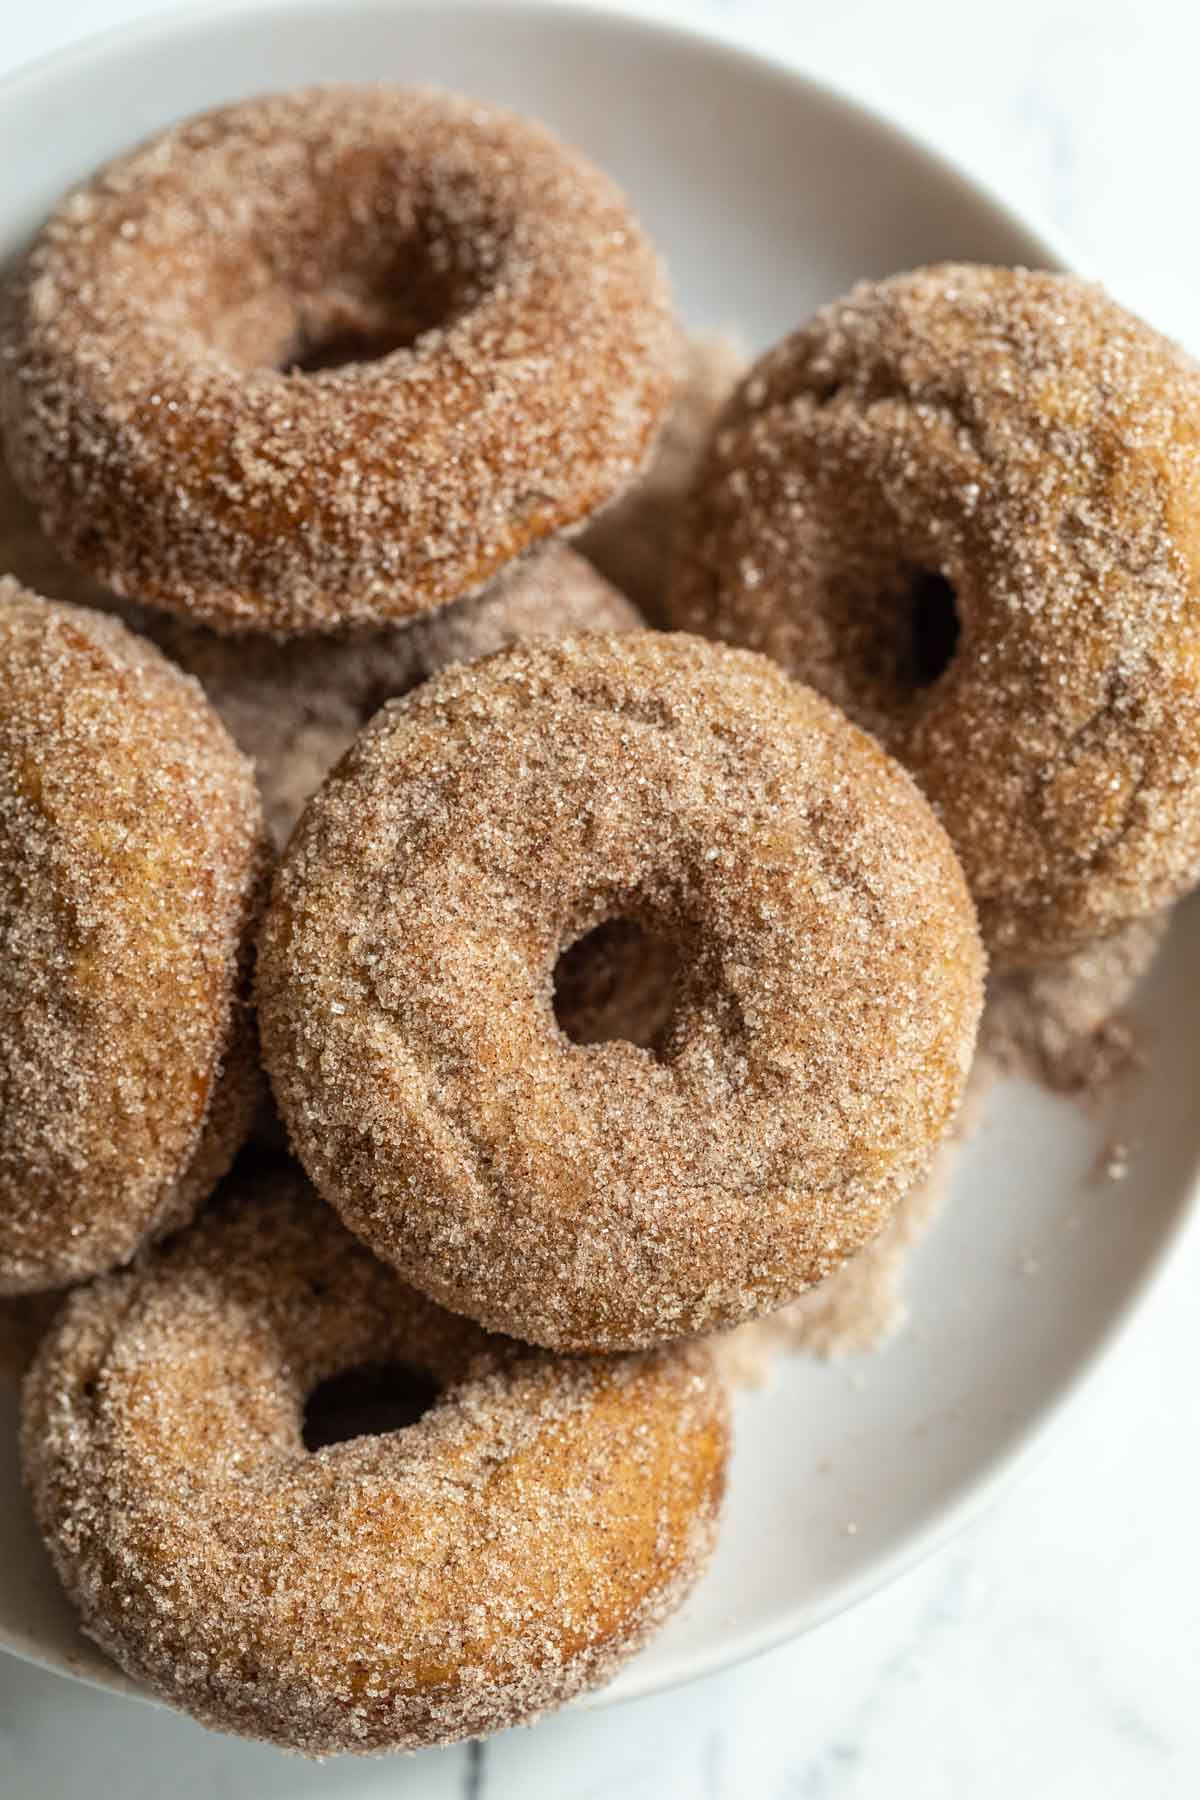 Baked vegan donut reipe this donut recipe is so simple to